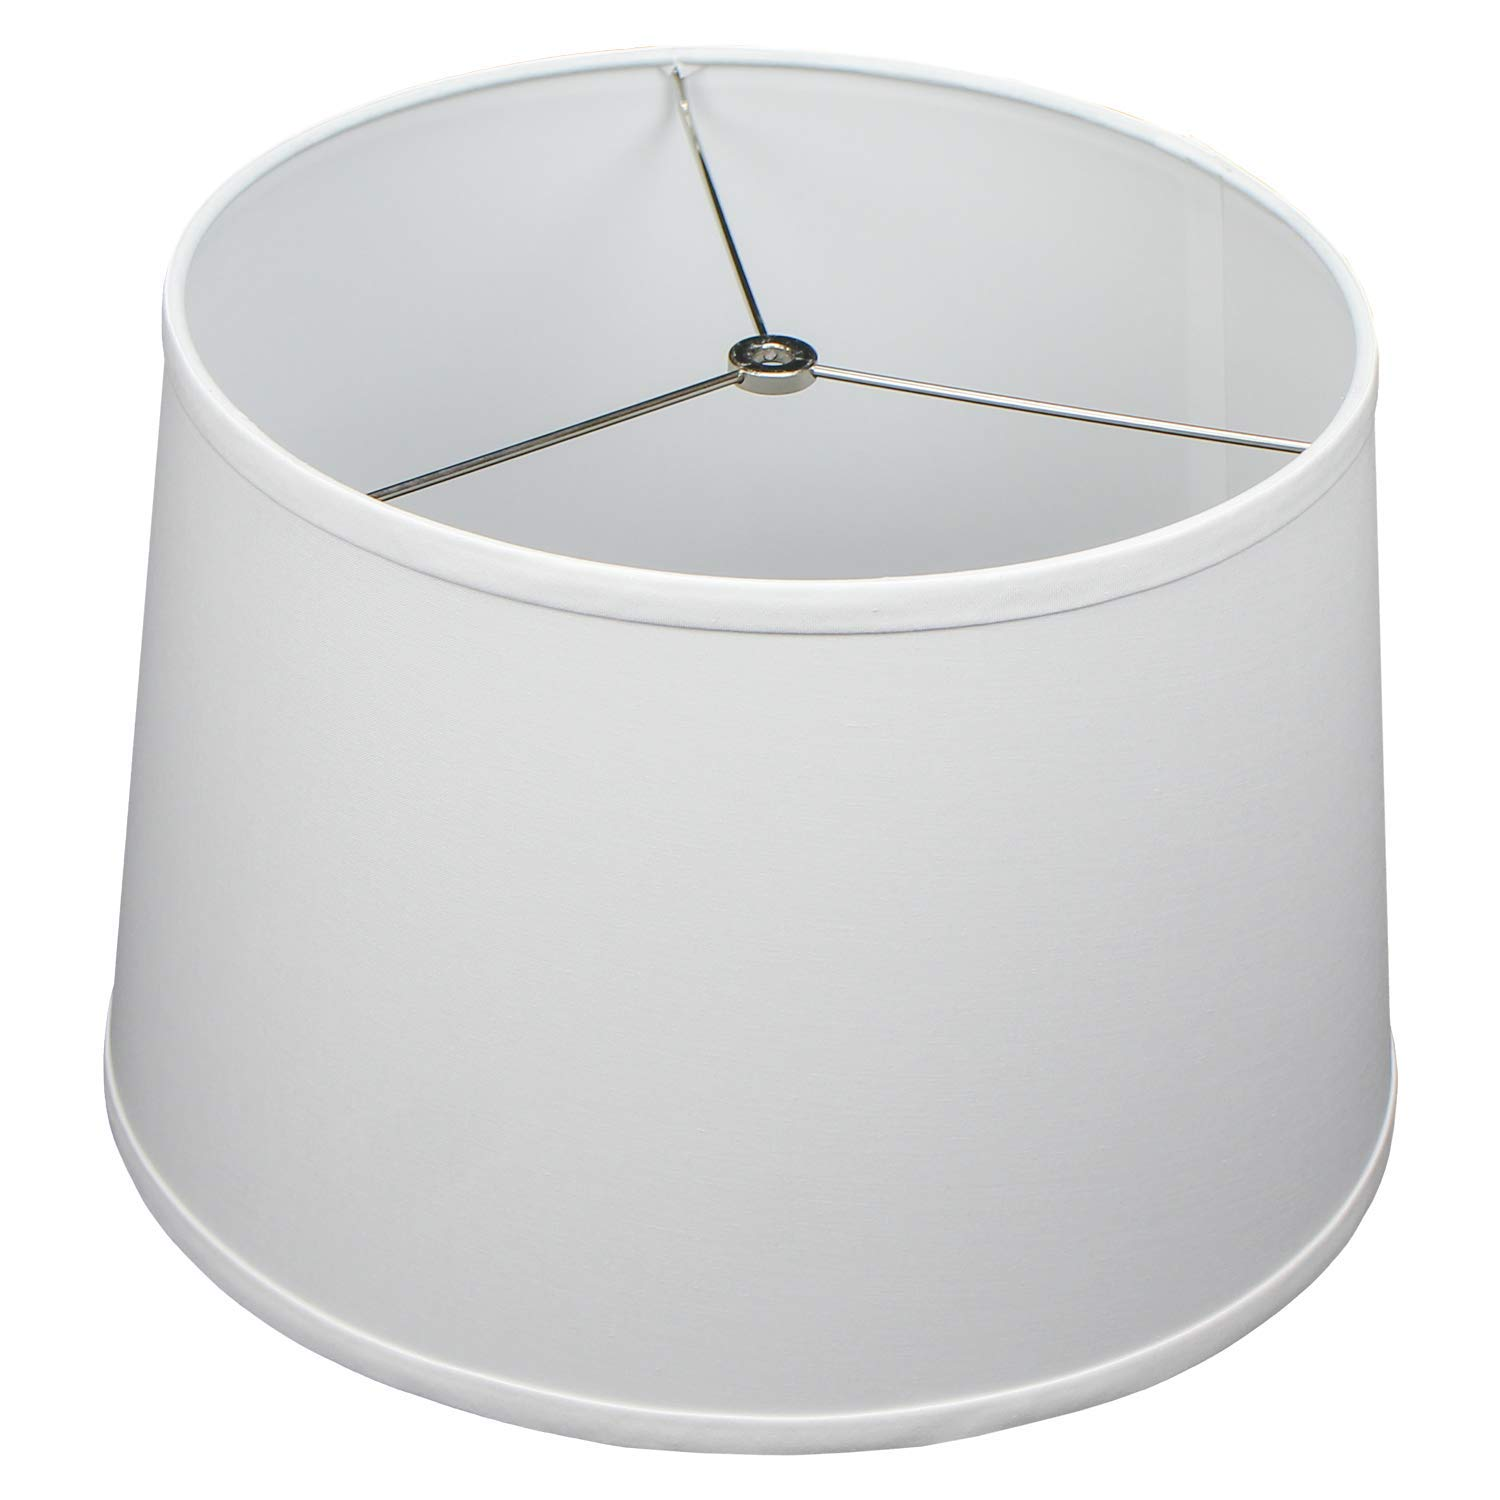 FenchelShades.com 13'' Top Diameter x 15'' Bottom Diameter x 10'' Height Fabric Drum Lampshade Spider Attachment (White)